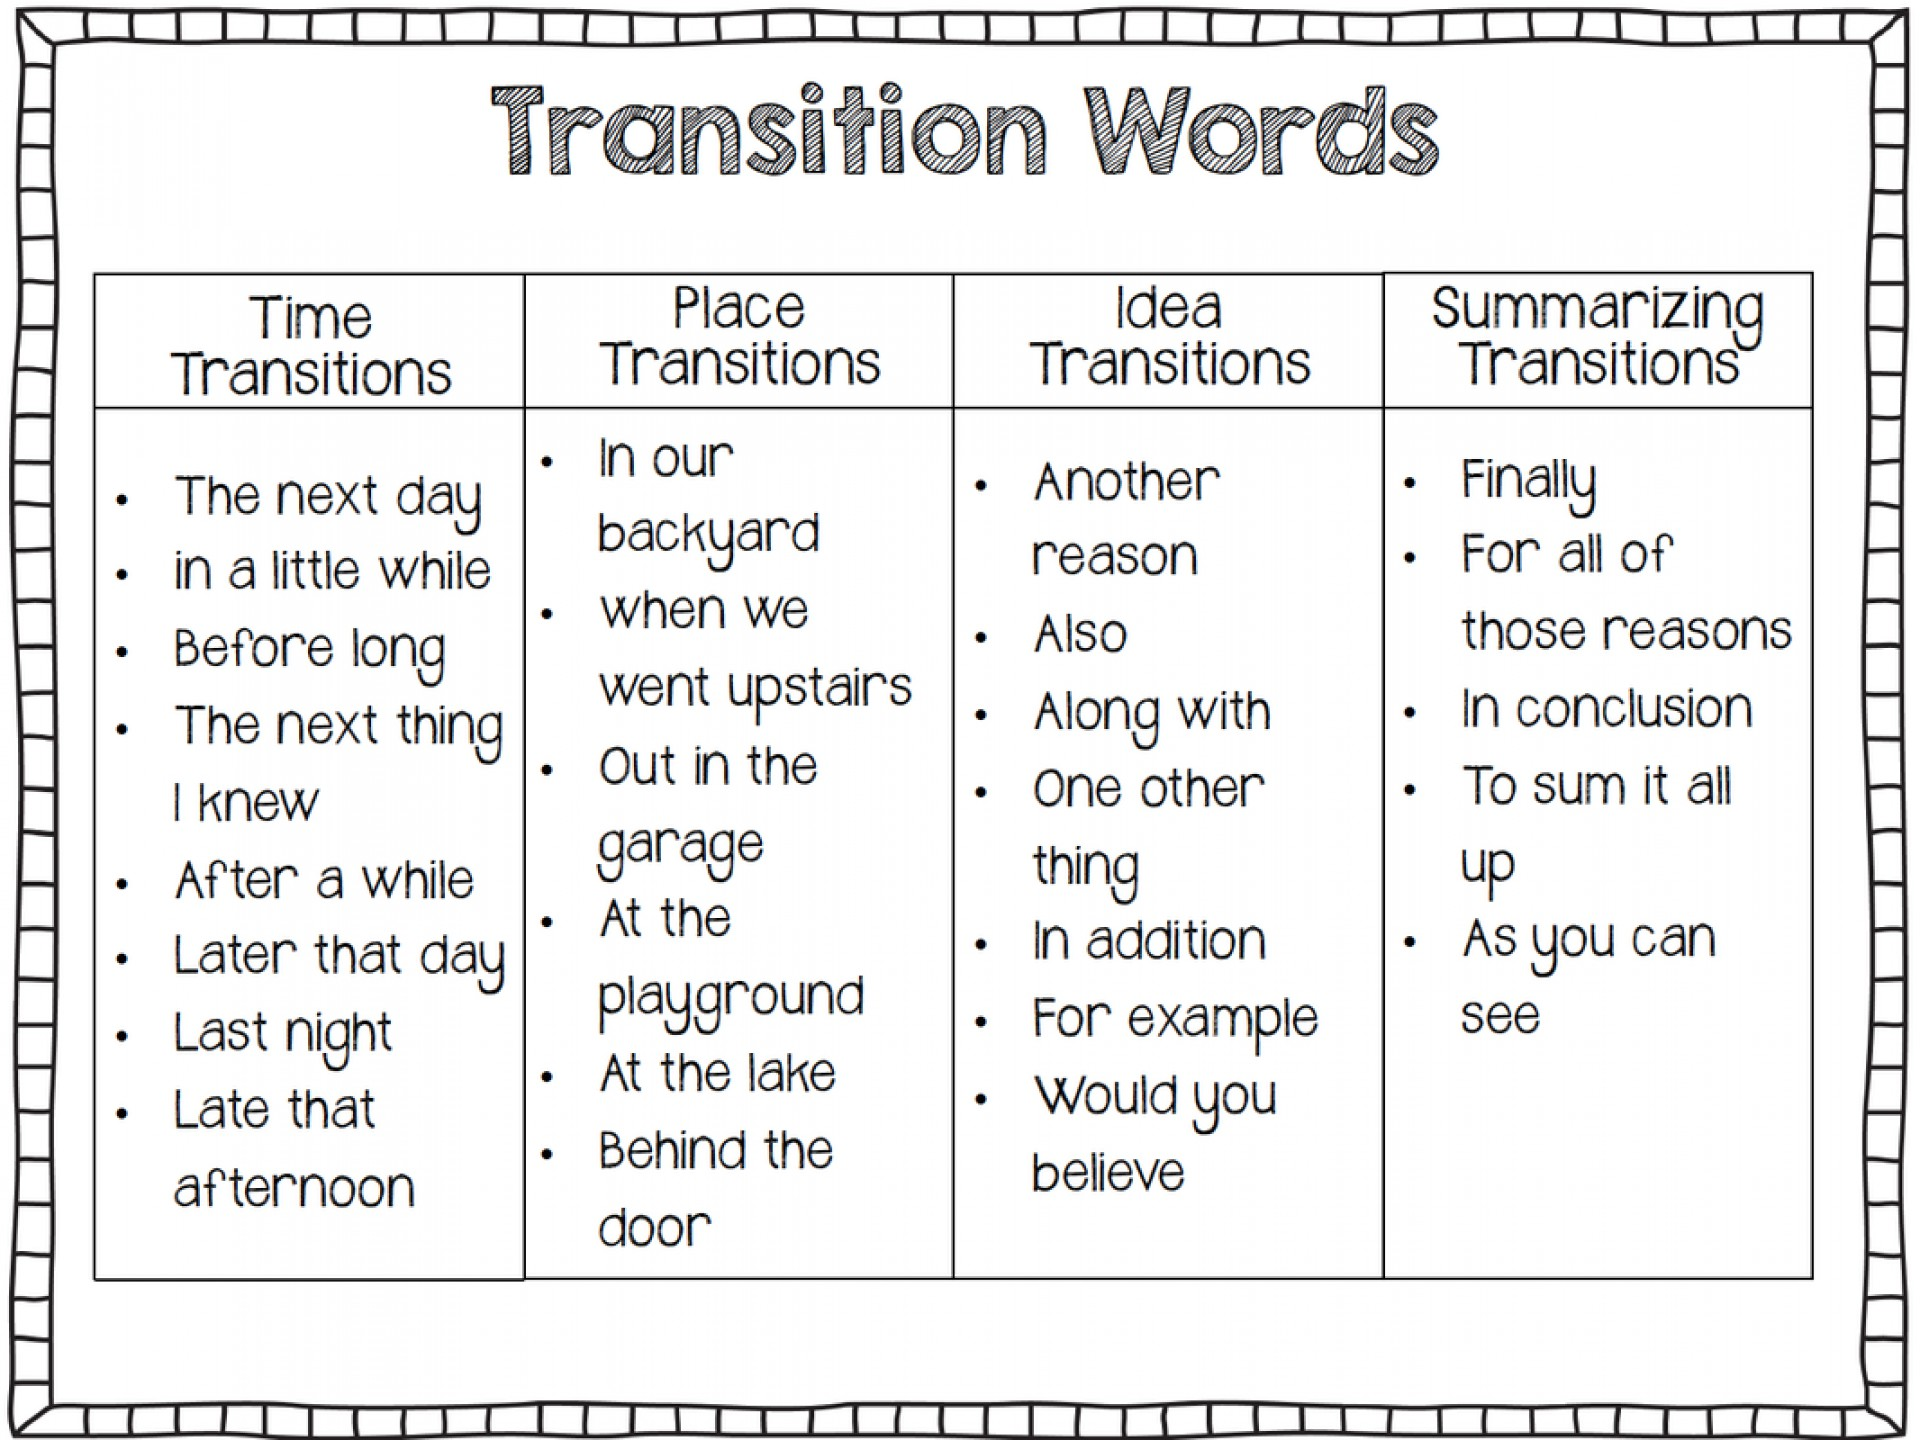 008 Transition Words2 Essay Example Words And Phrases For Amazing Essays Opinion Writing Narrative 5th Grade Expository 1920